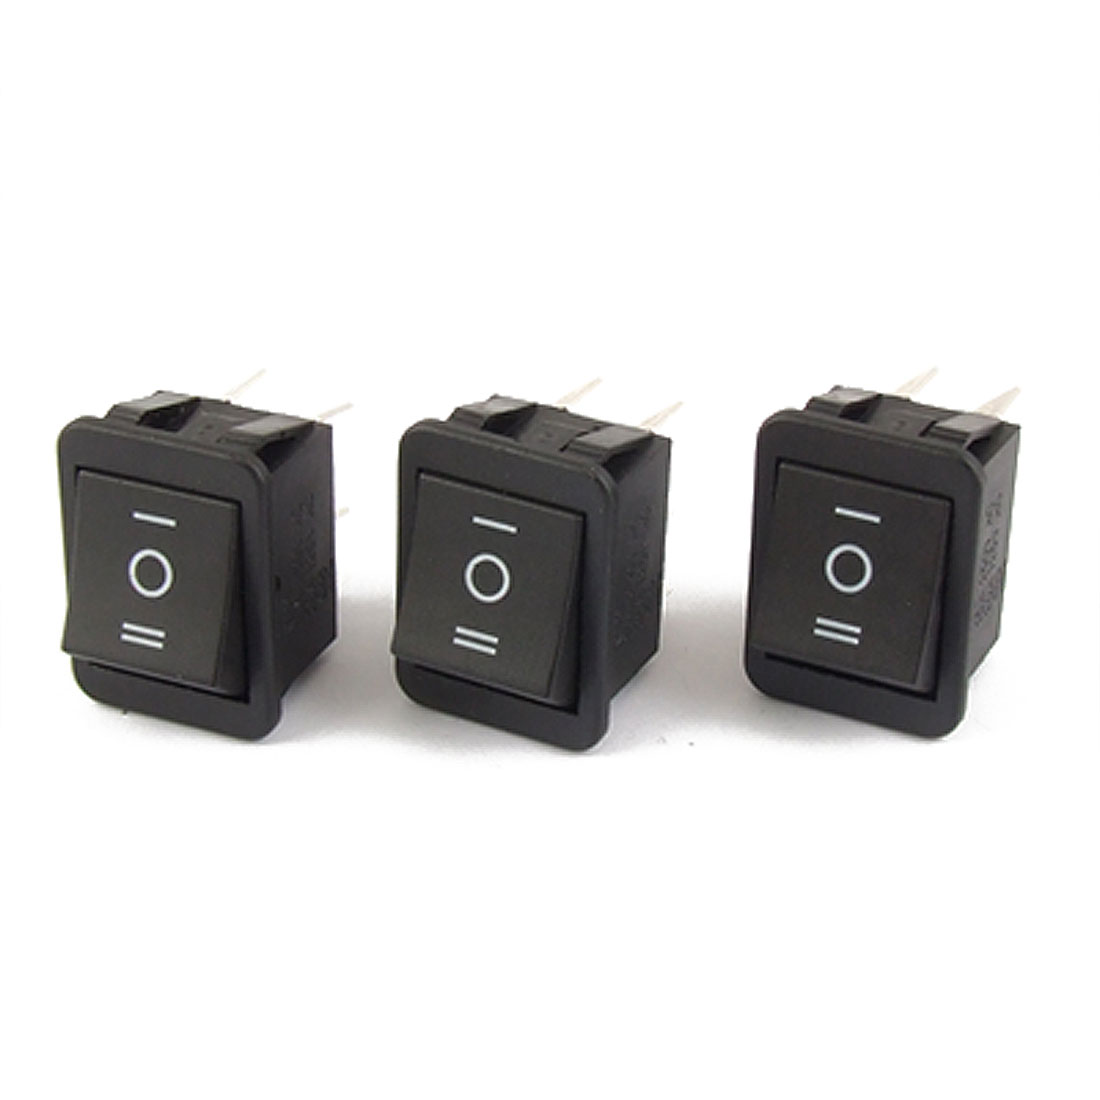 3pcs 6 Pin DPDT ON-OFF-ON 3 Position Snap in Rocker Switch 15A/250V 20A/125V AC